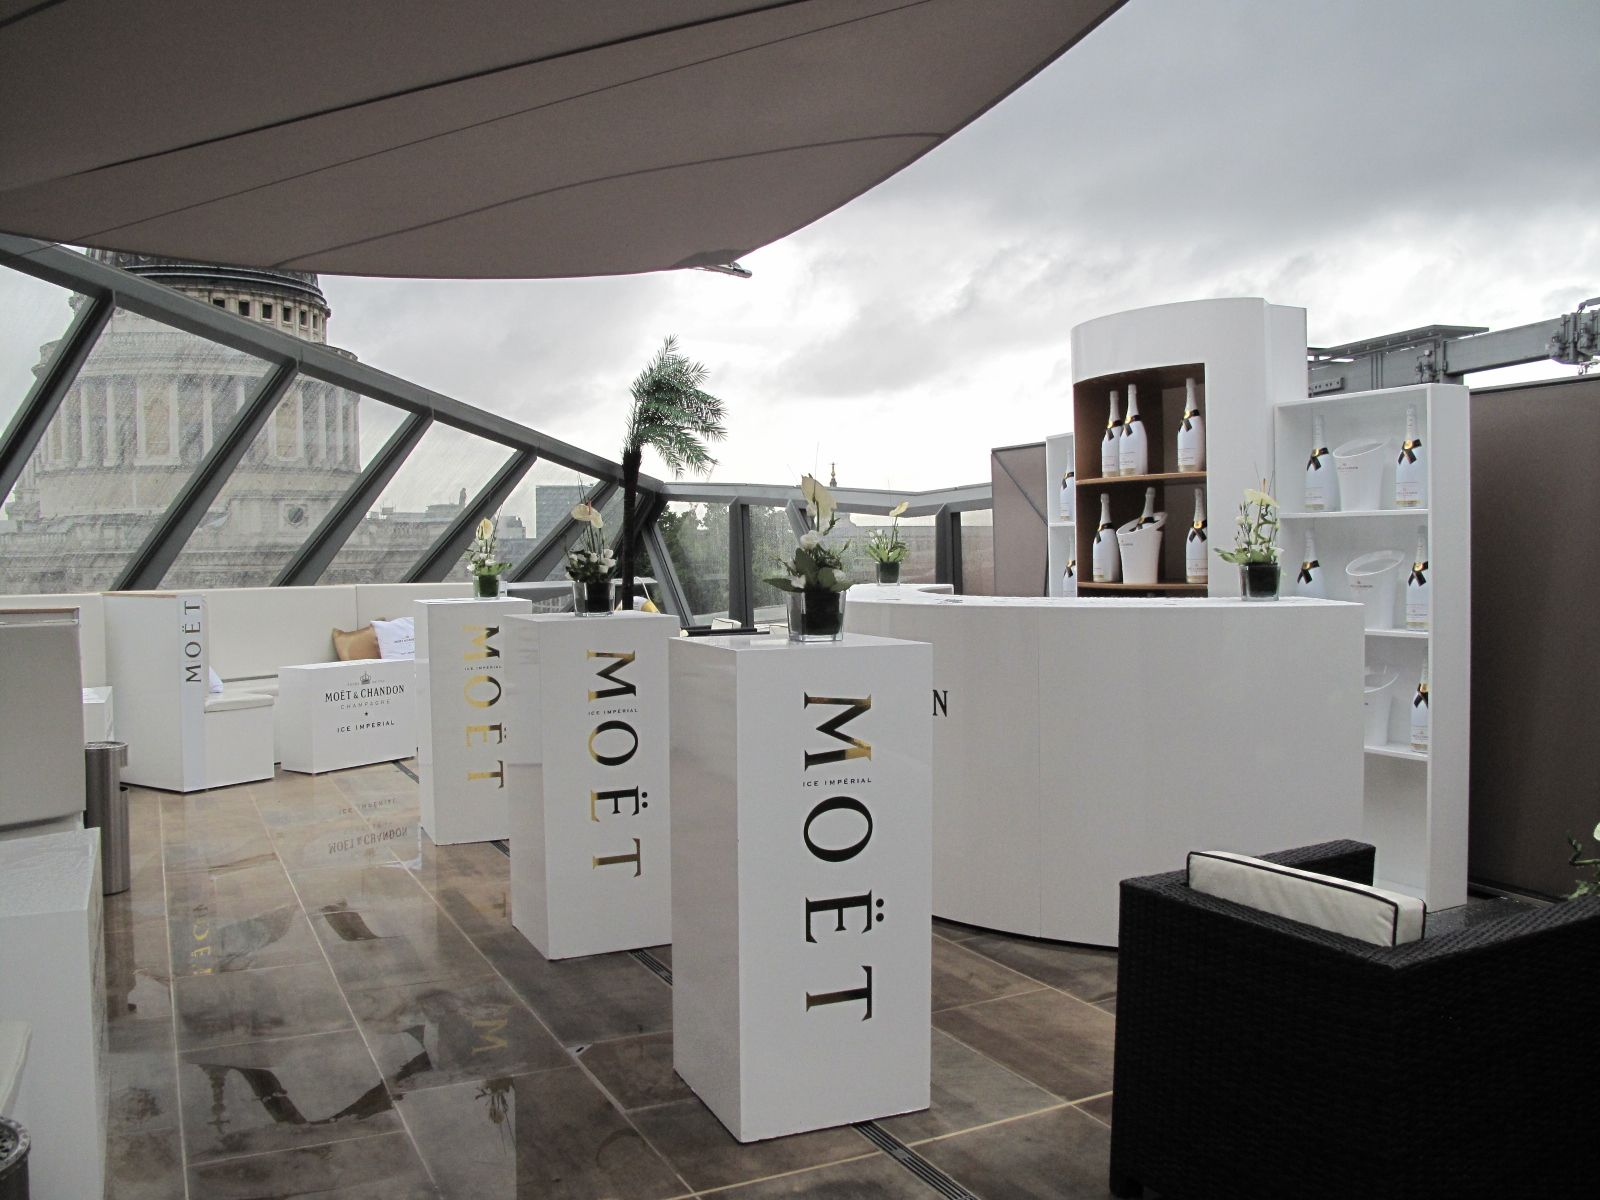 Brunch Toit Terrasse Paris Moet Ice Imperial Launch At The One New Change Madison